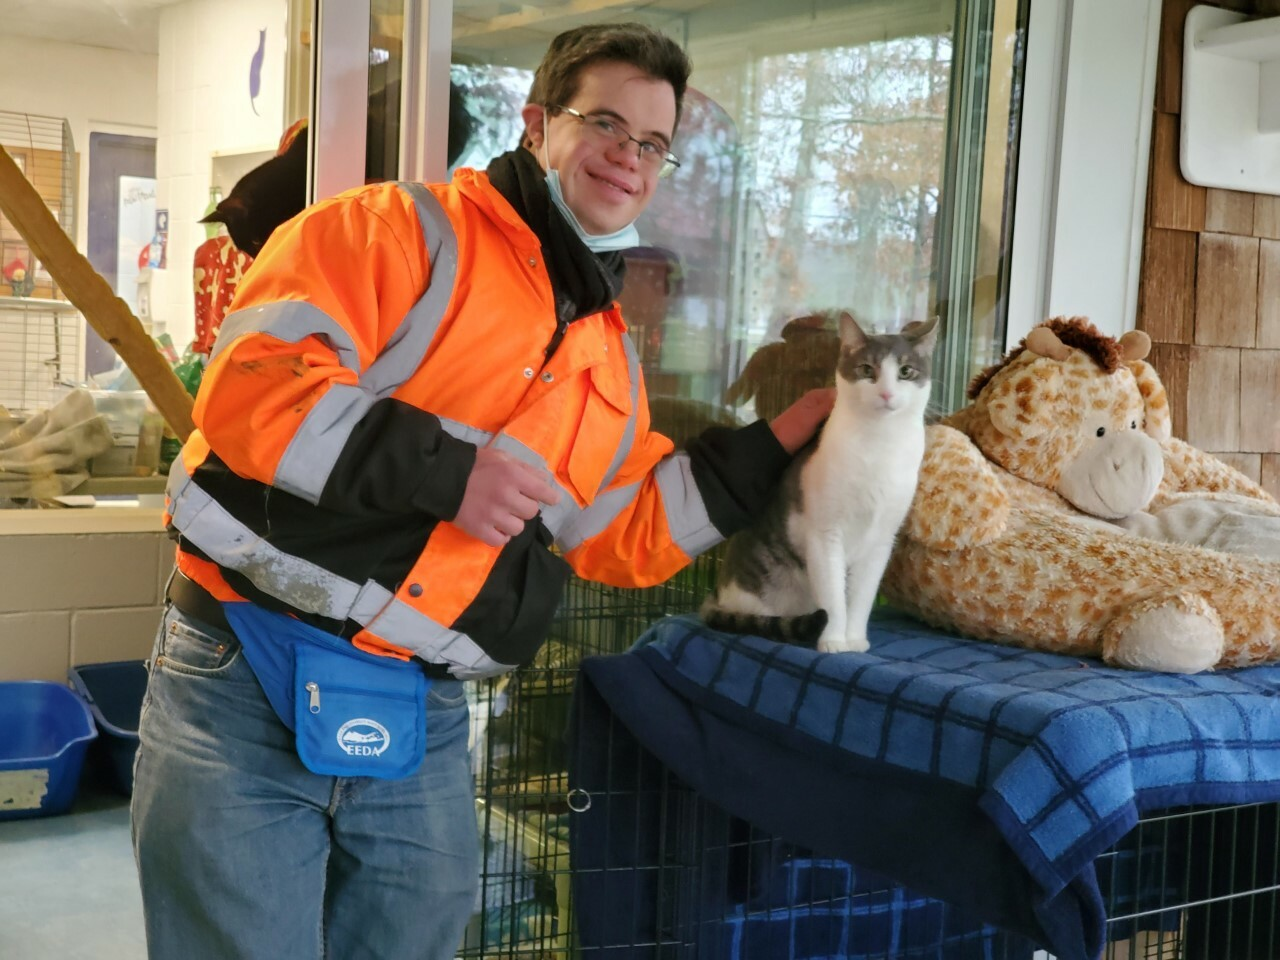 Gregory Ficara is the Southampton Animal Shelter Foundation Volunteer of the Month for December.